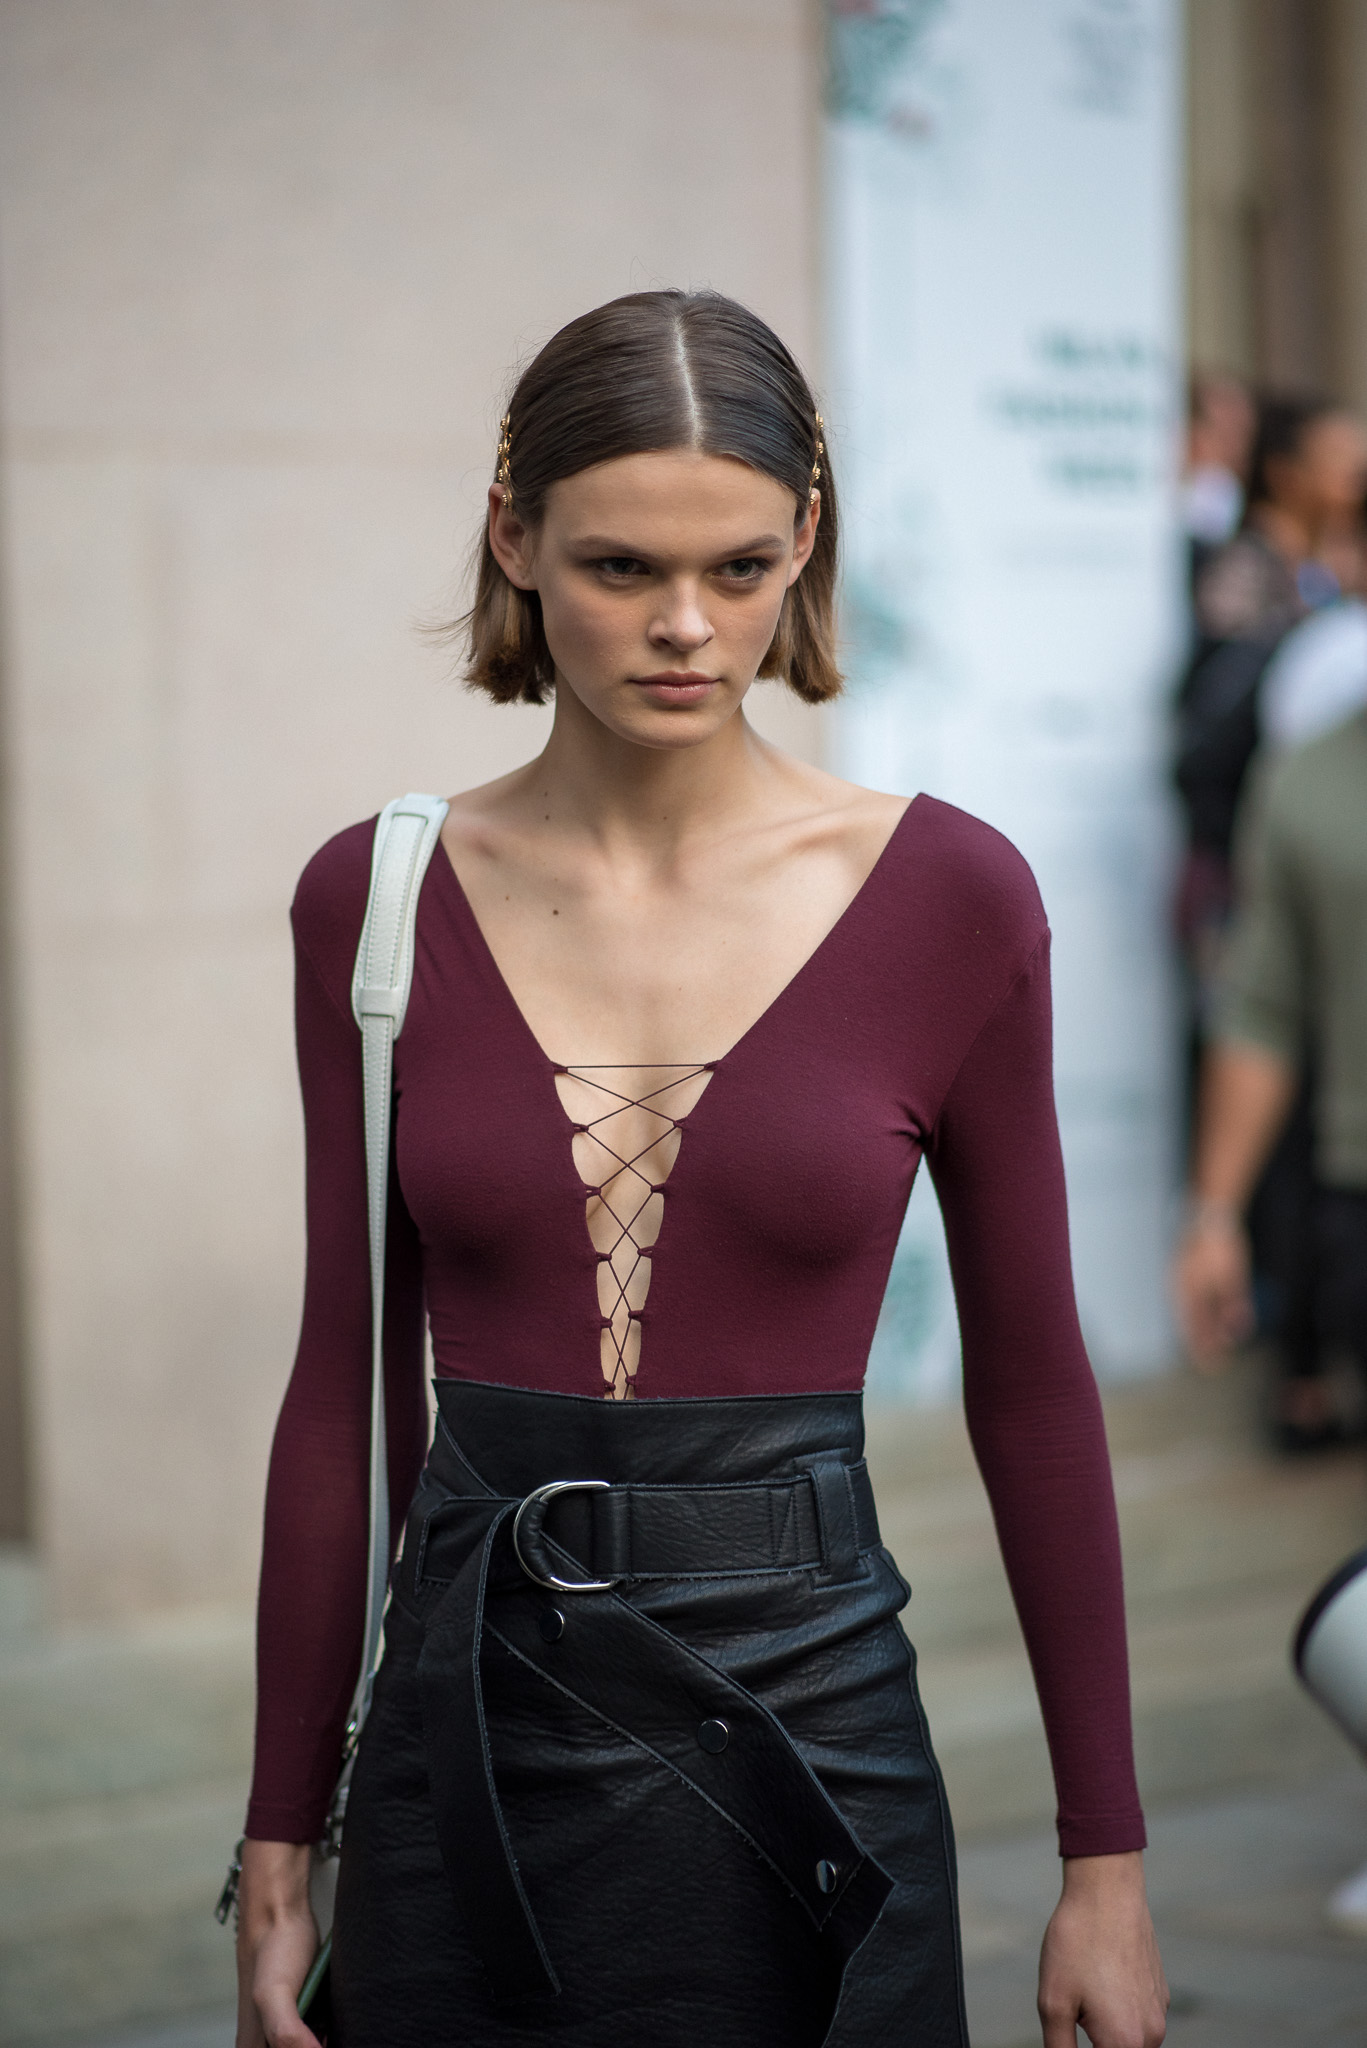 Cara Taylor Models Off Duty Versace Milan Fashion Week September 2017 Photography Annika Lagerqvist www.annikasomething.com